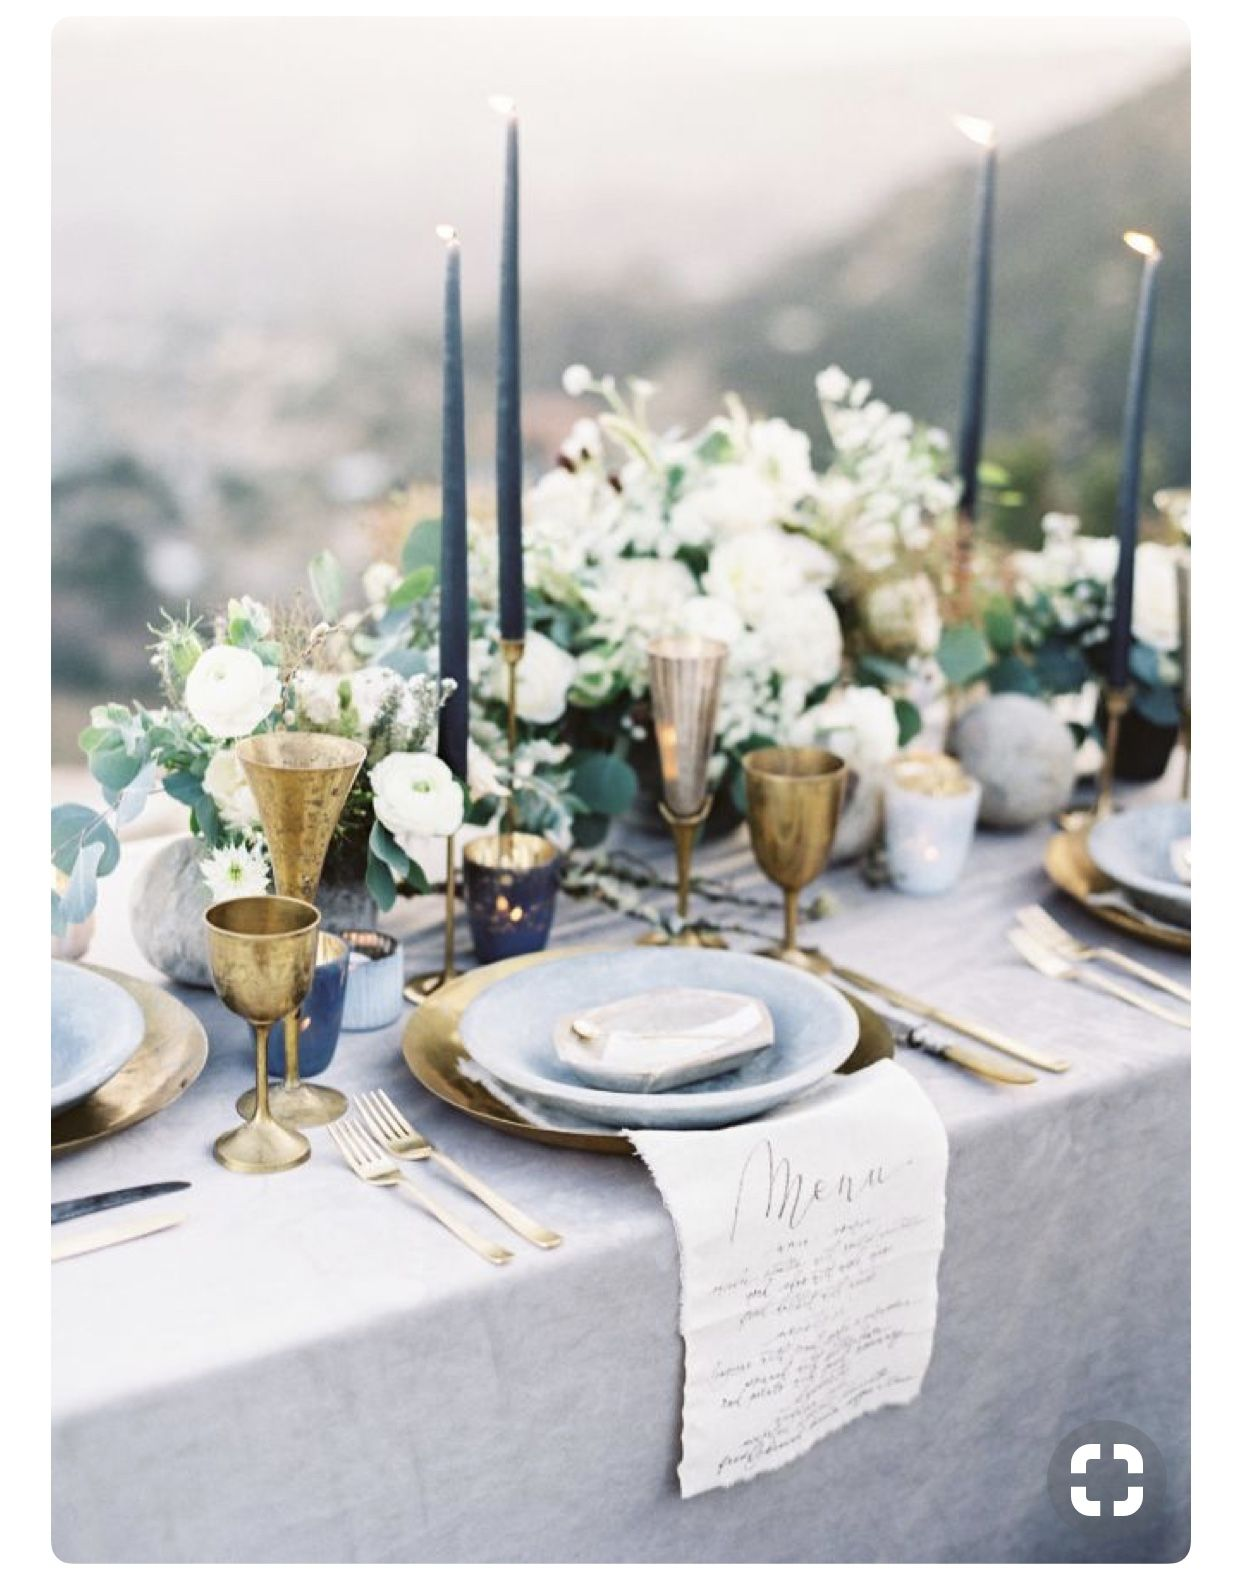 Pin by Katie Beavis on Pretty Things | Pinterest | Wedding, Weddings ...